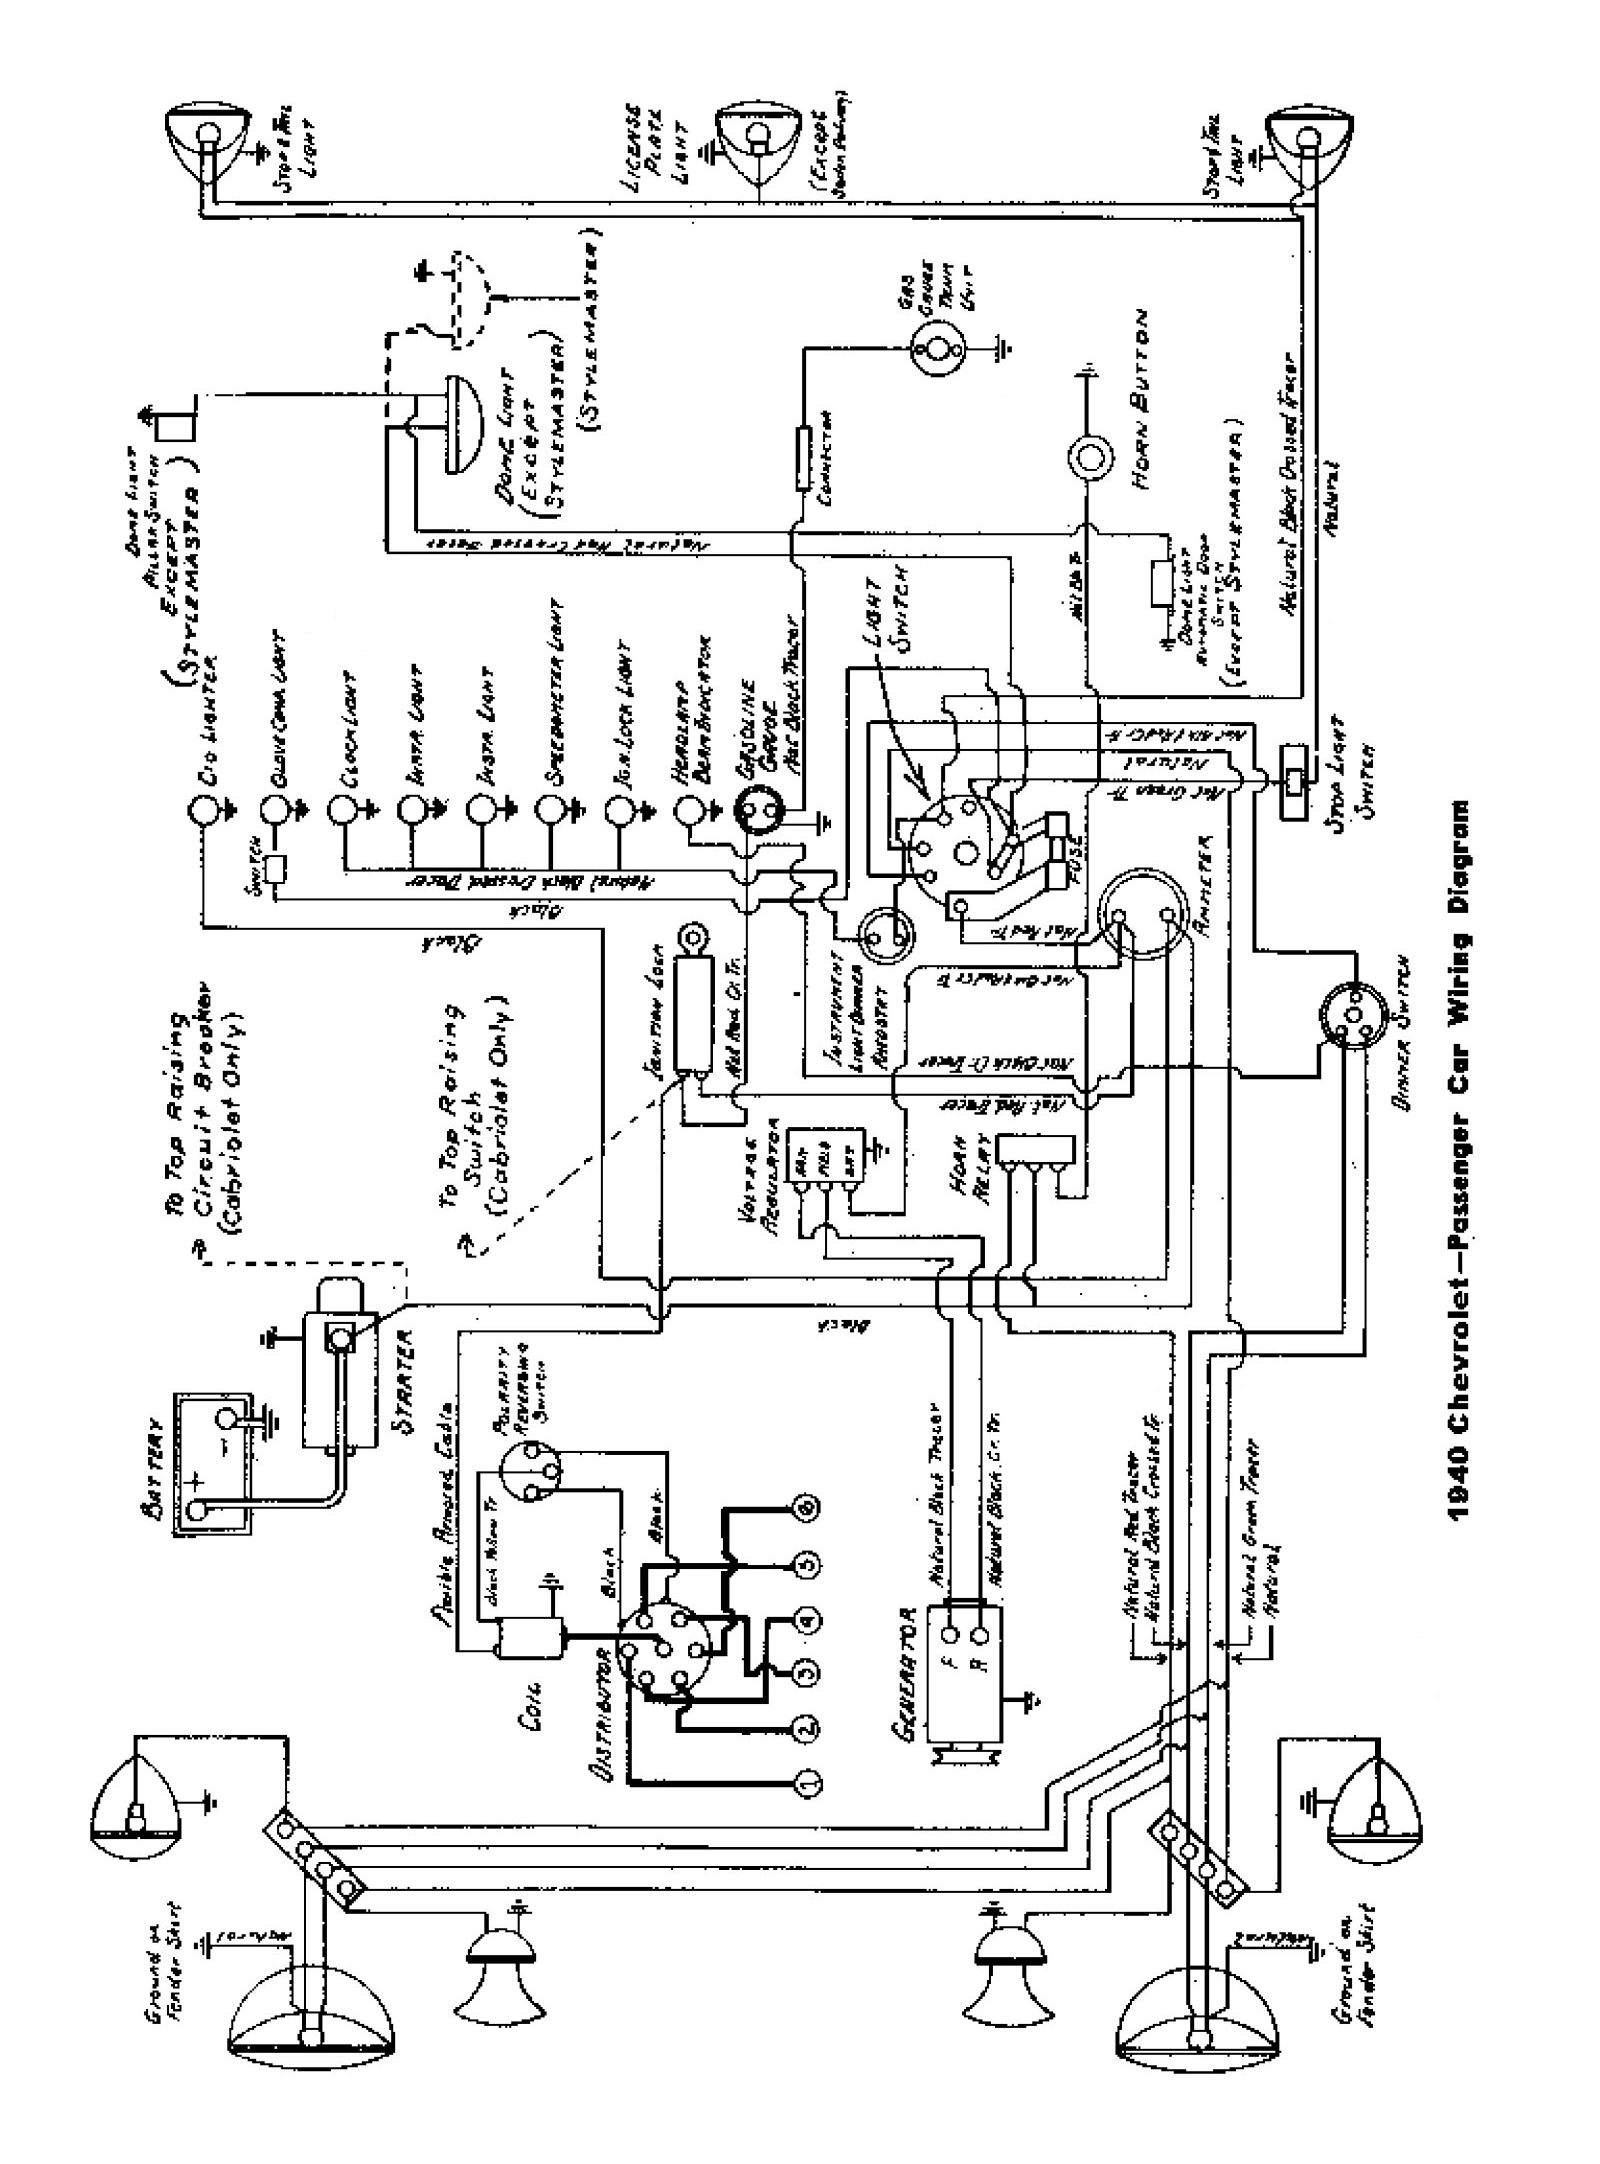 1951 ford wiring harness data wiring diagram blog 1951 ford wiring harness wiring diagram data 5610 ford tractor wiring diagram 1951 ford wiring harness